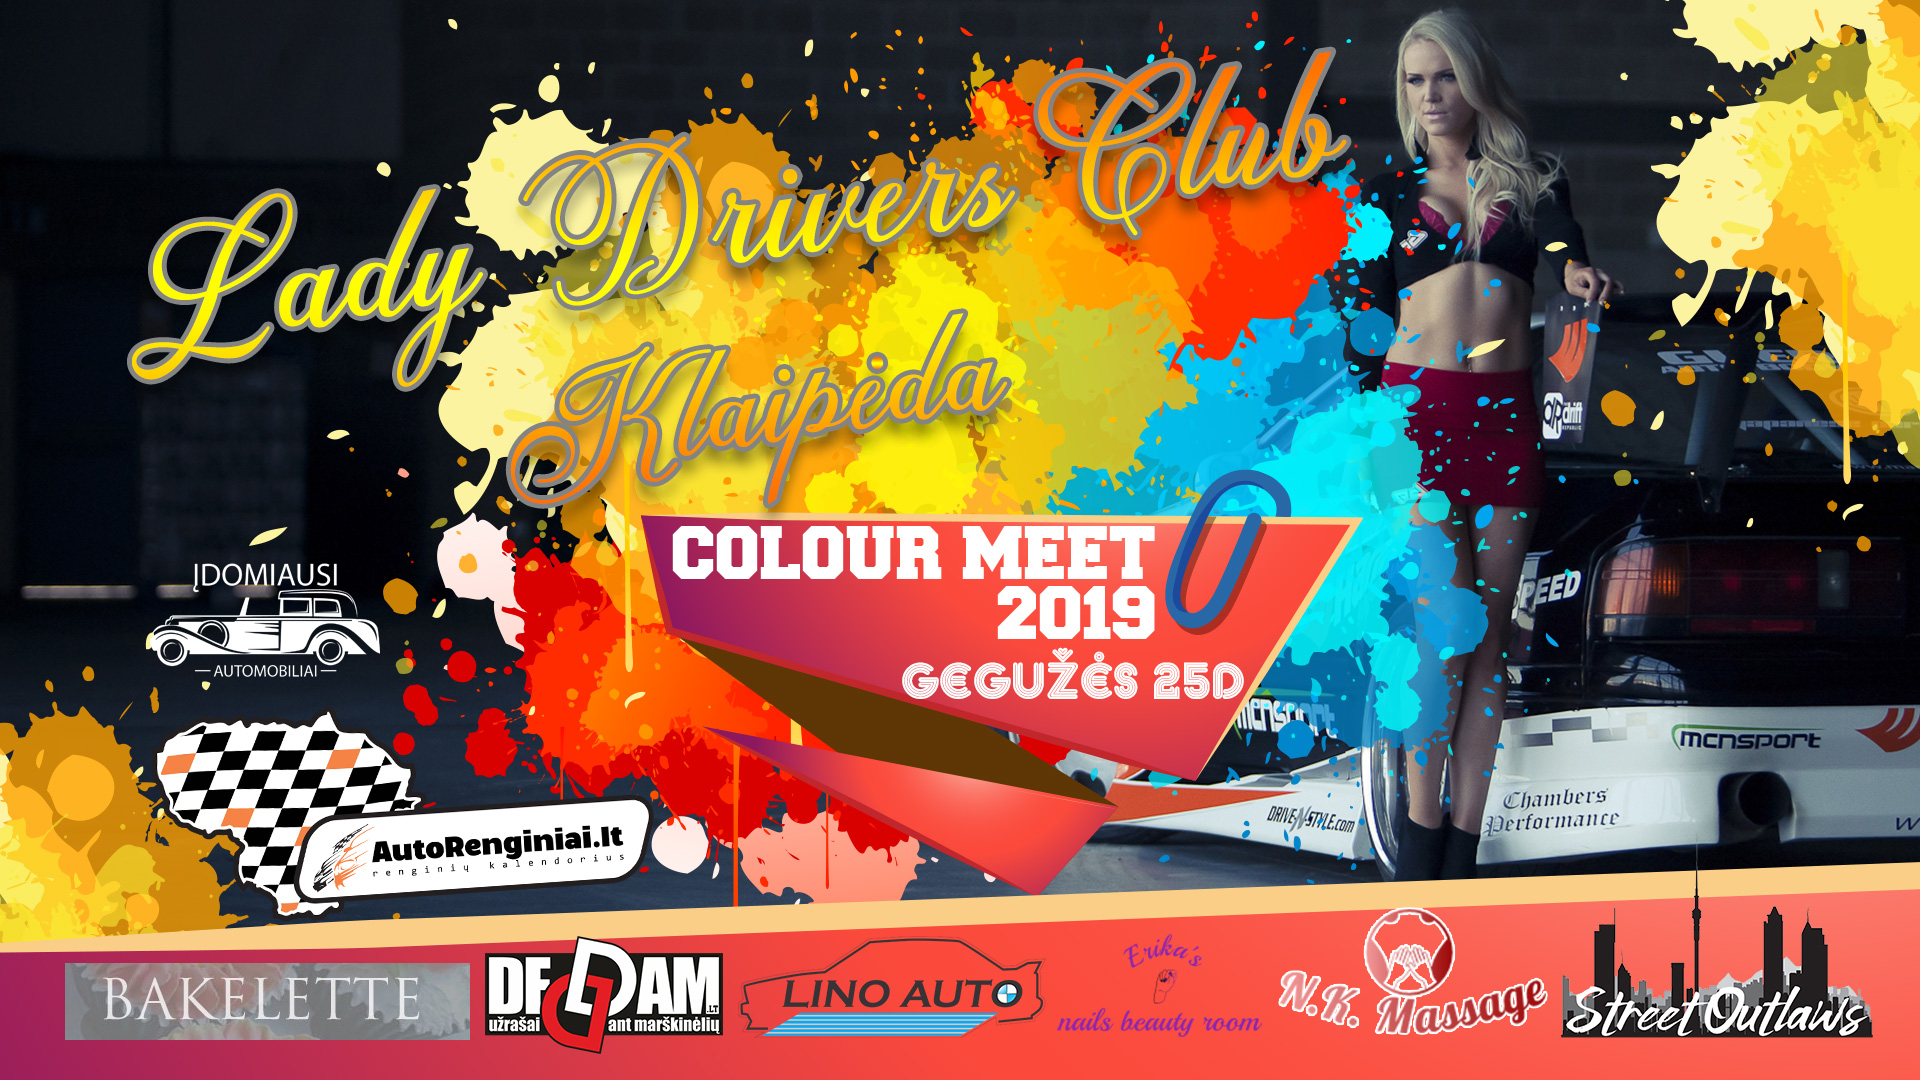 Lady Drivers Club Klaipėda - Colour Meet 2019